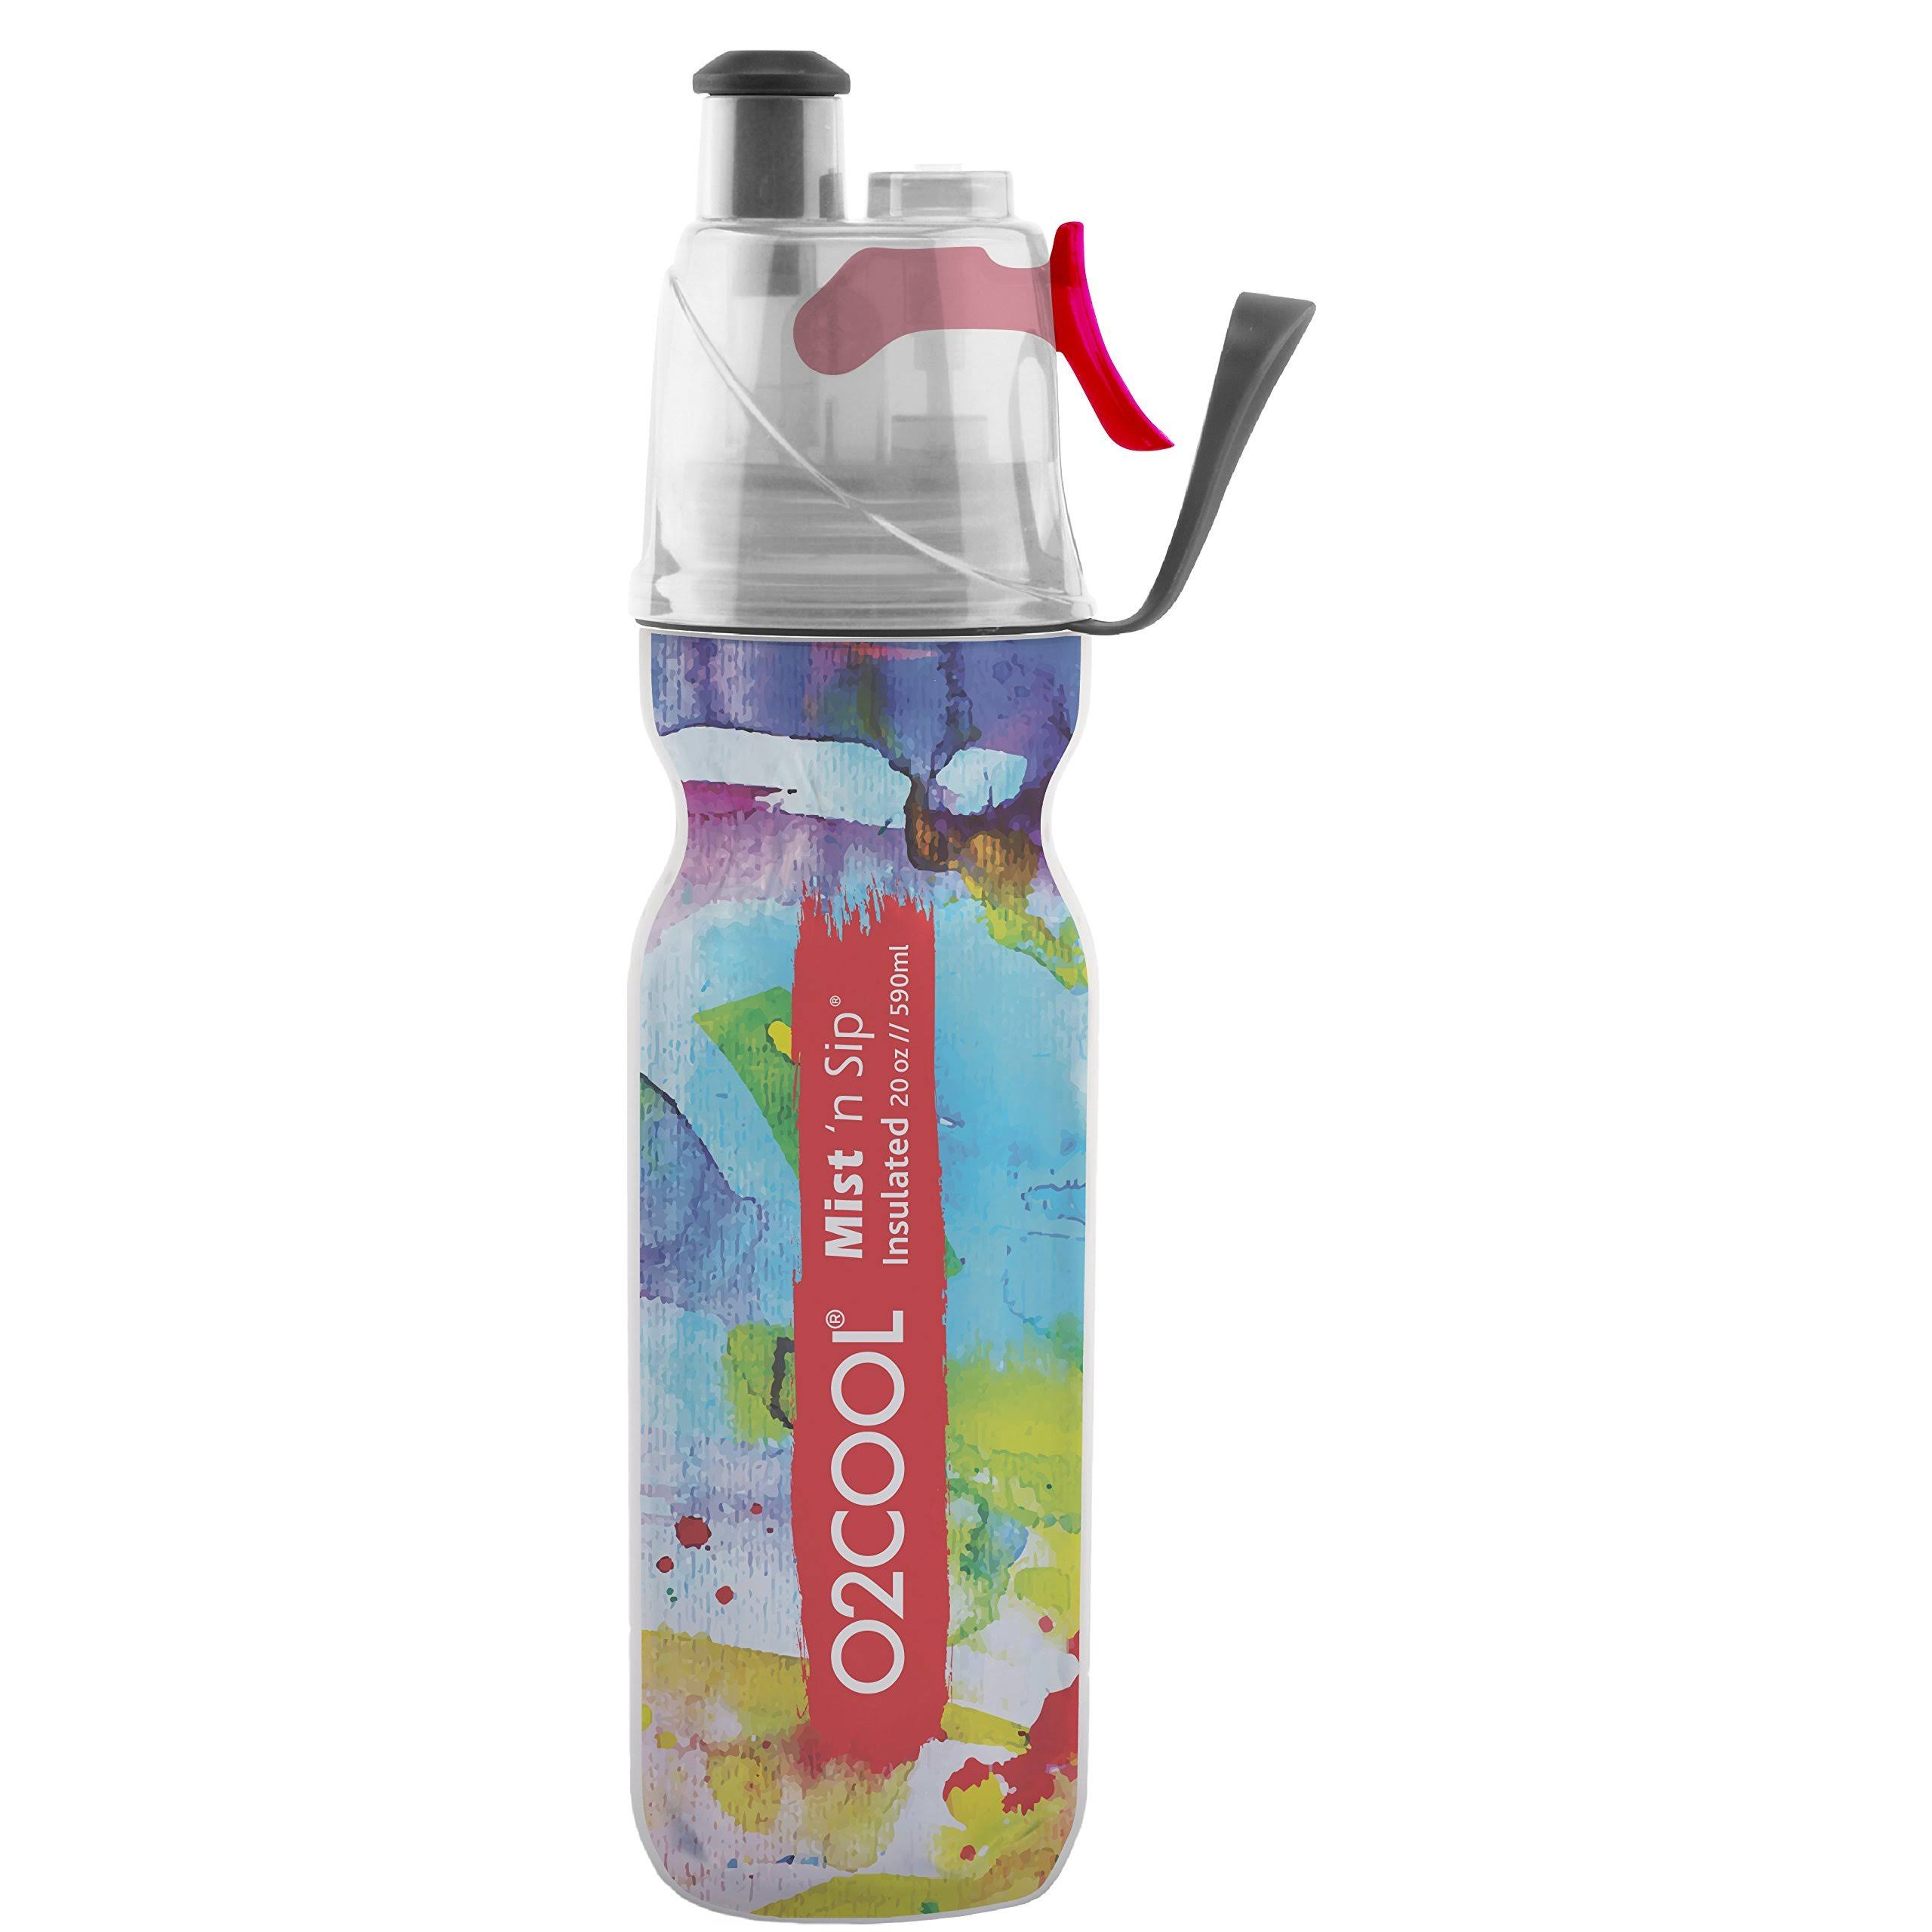 O2cool Arcticsqueeze Insulated Mist 'N Sip Squeeze Bottle - 20oz, Watercolor 3